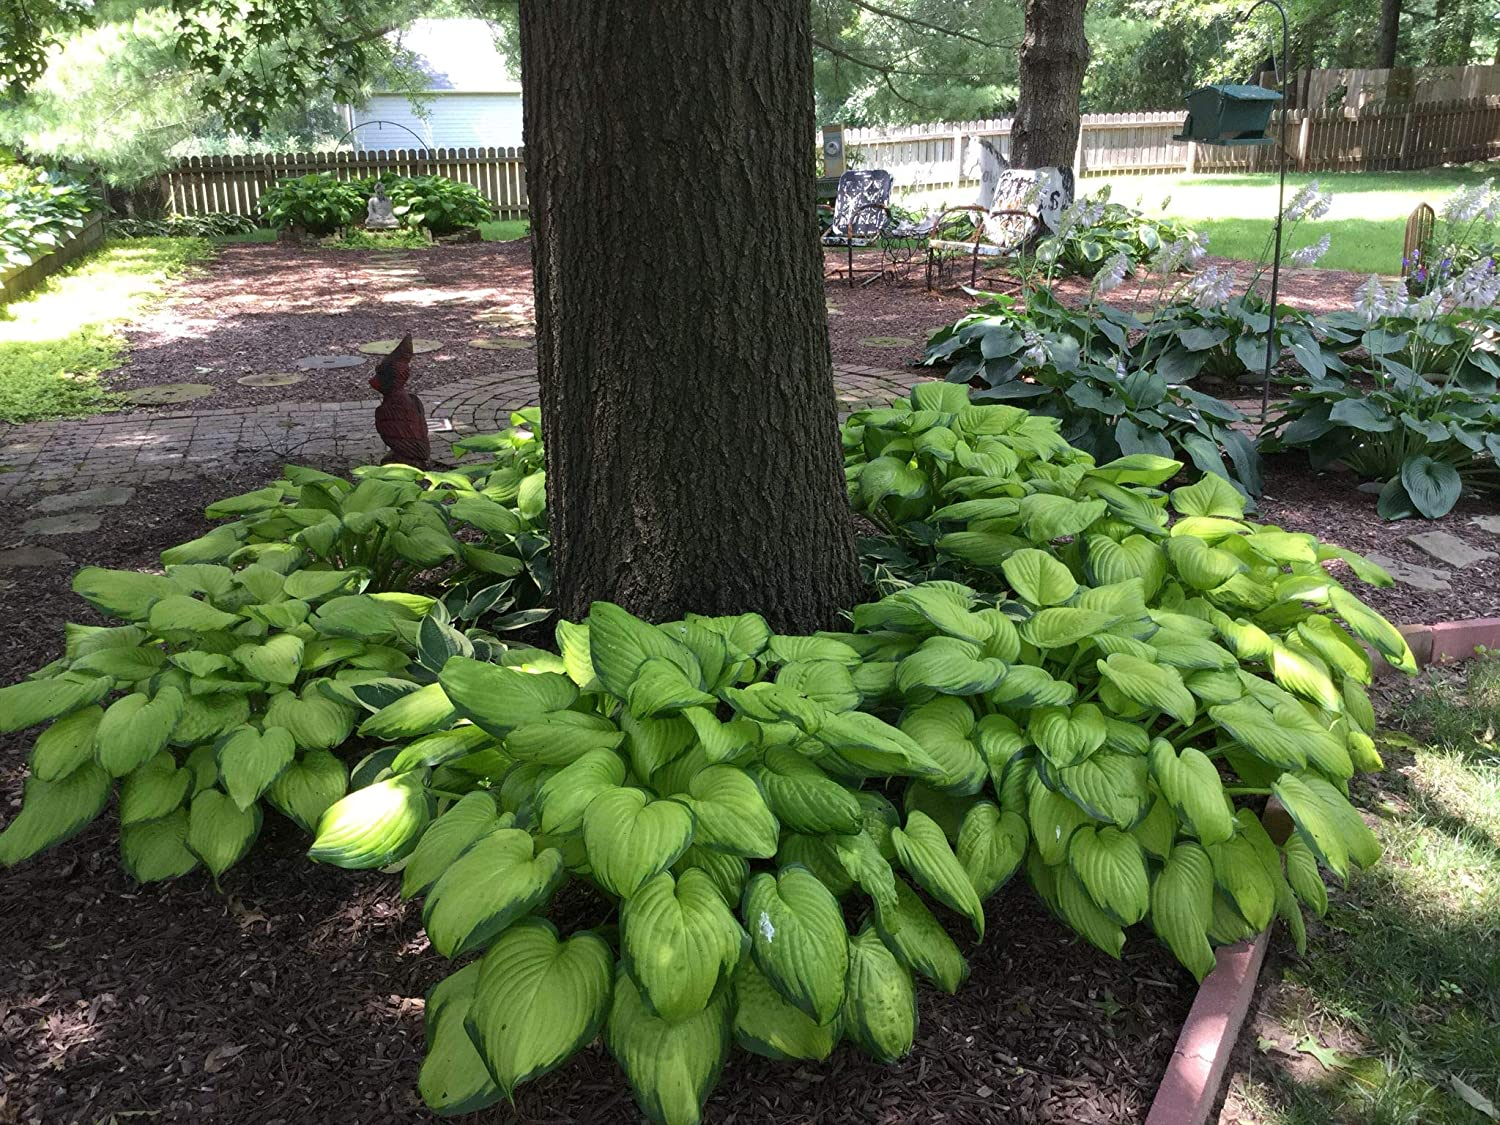 Stained Glass Hosta Live Plants | Prominent Veins Throughout The Leaf give This hosta a Stained Glass Window Effect, 1 Gallon